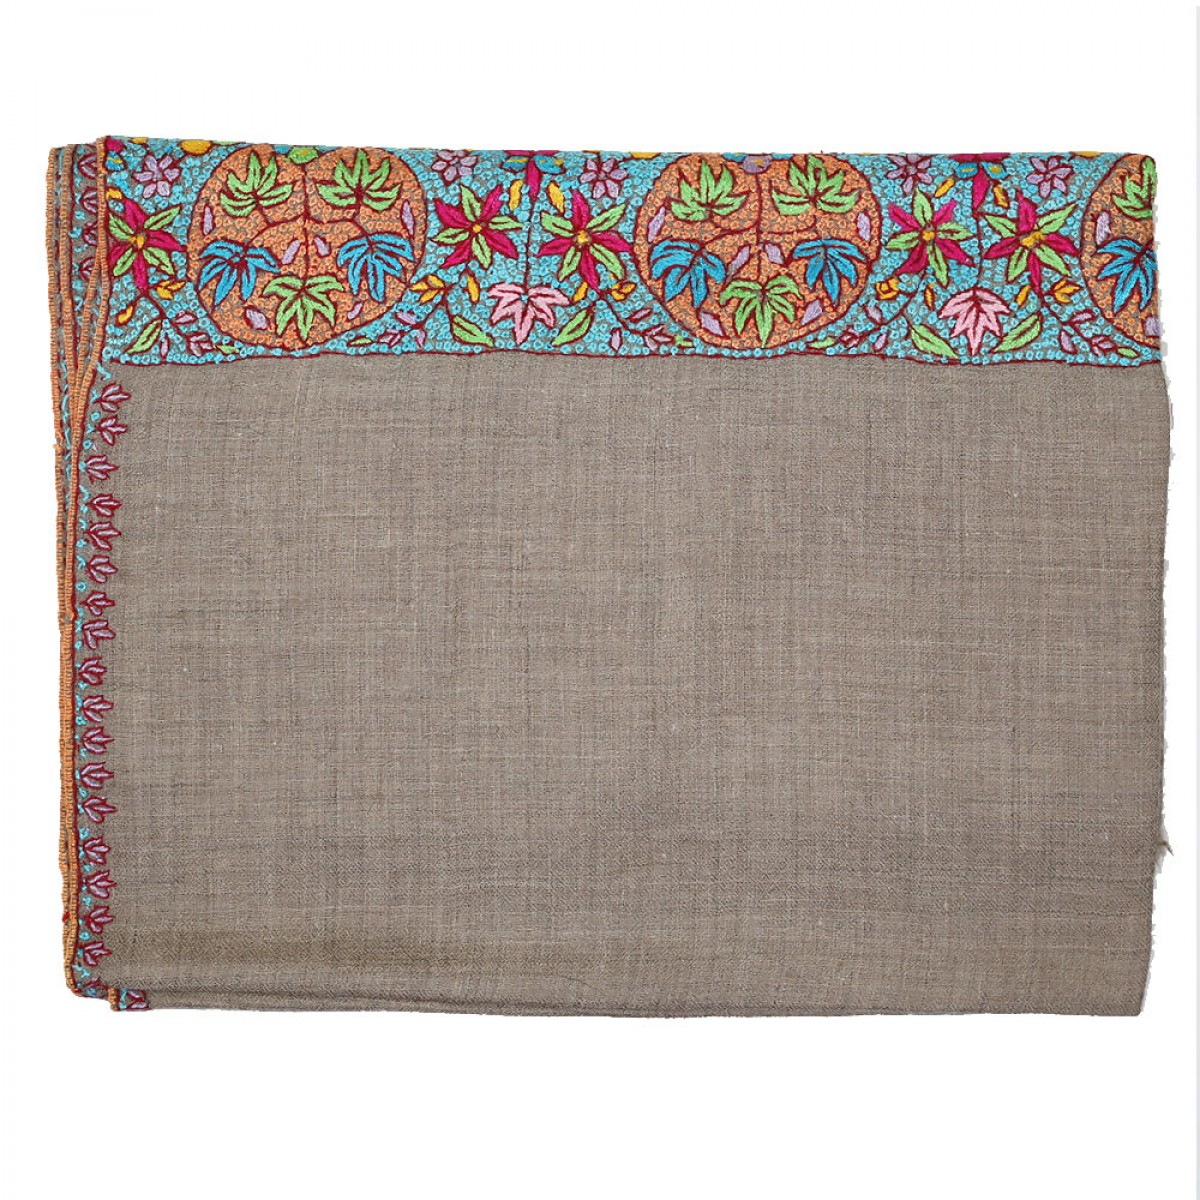 Embroidered Handloom Pashmina- Natural Aqua